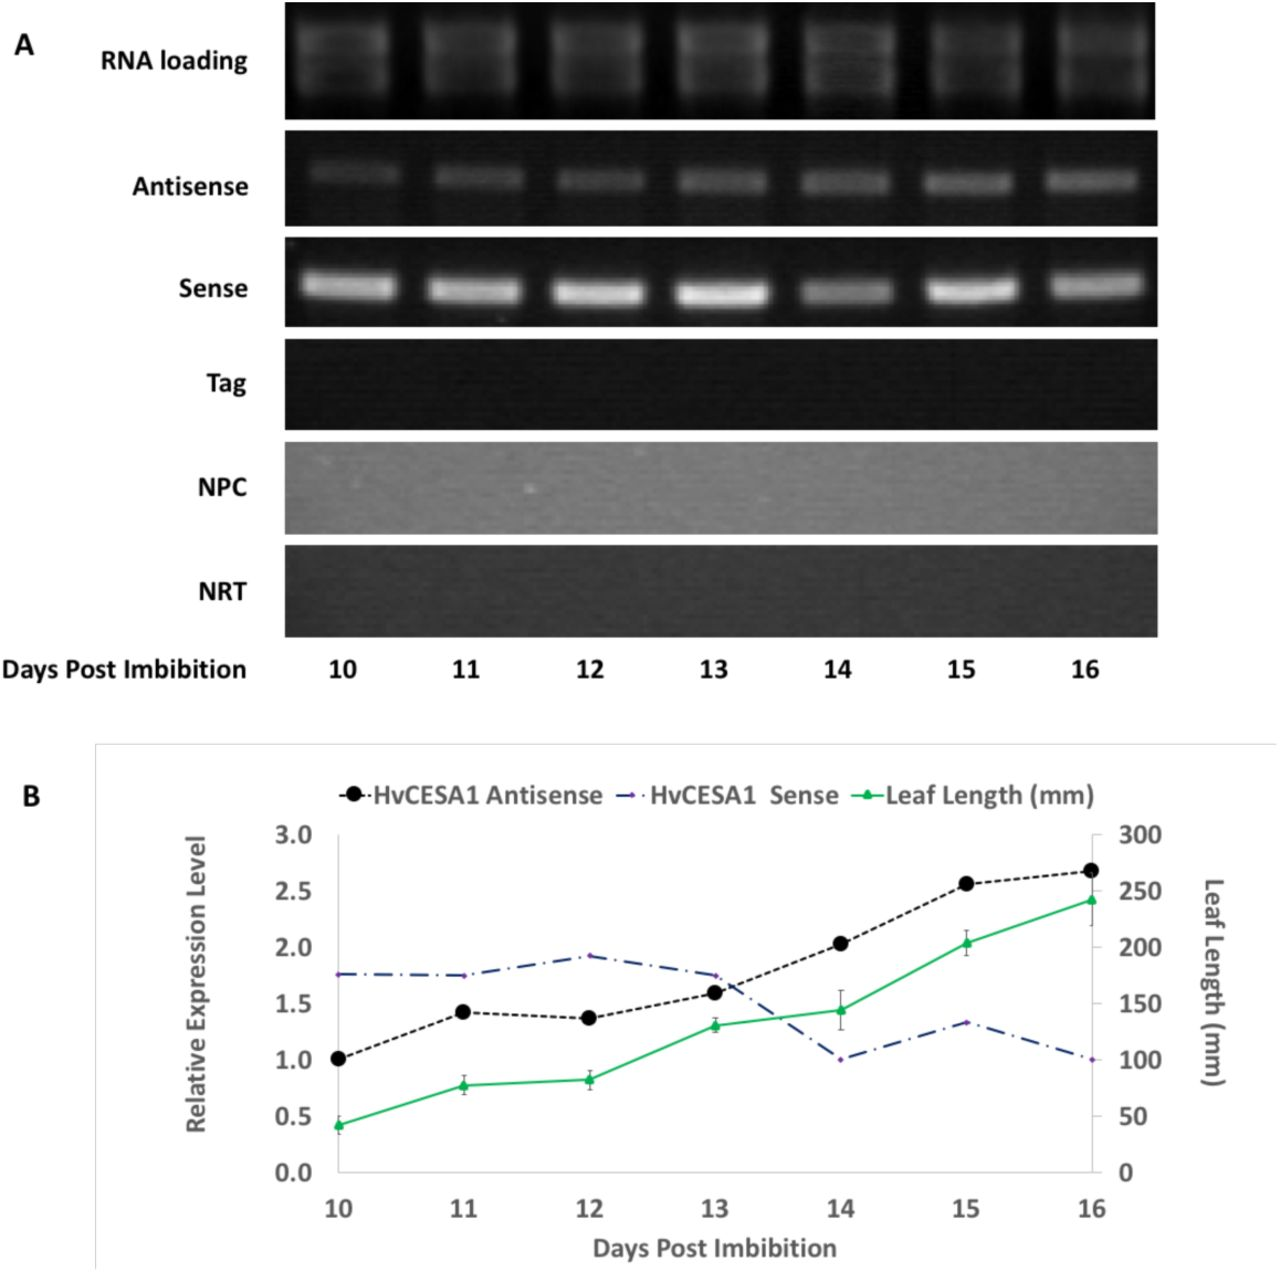 Detection of HvCesA1 antisense transcripts by SS-RT-PCR. (A) Tagged SS-RT-PCR was performed to detect HvCesA1 antisense transcripts over the course of third leaf development (10-16 days post imbibition). First-strand cDNAs were prepared using HvA1-sense-Tag1 GSP (antisense; NRT control), oligo dT (sense; Tag control), or no primer at all (NPC). The HvA1-antisense GSP and the Tag1 primer were used for amplification of the antisense, Tag, NPC, and NRT samples. For sense amplification, HvA1-sense and HvA1-antisense GSPs were used with oligo dT primed cDNAs. PCR products were confirmed by DNA sequencing. (B) Gel densitometry was performed to estimate HvCESA1 sense and antisense transcript abundances. Data were normalized to RNA loadings and expressed relative to the first day of collection (=1). Values are representative of multiple technical replicates (n ≥ 3). Overlaid are the average leaf blade lengths (mm) ± SD (n ≥ 3).